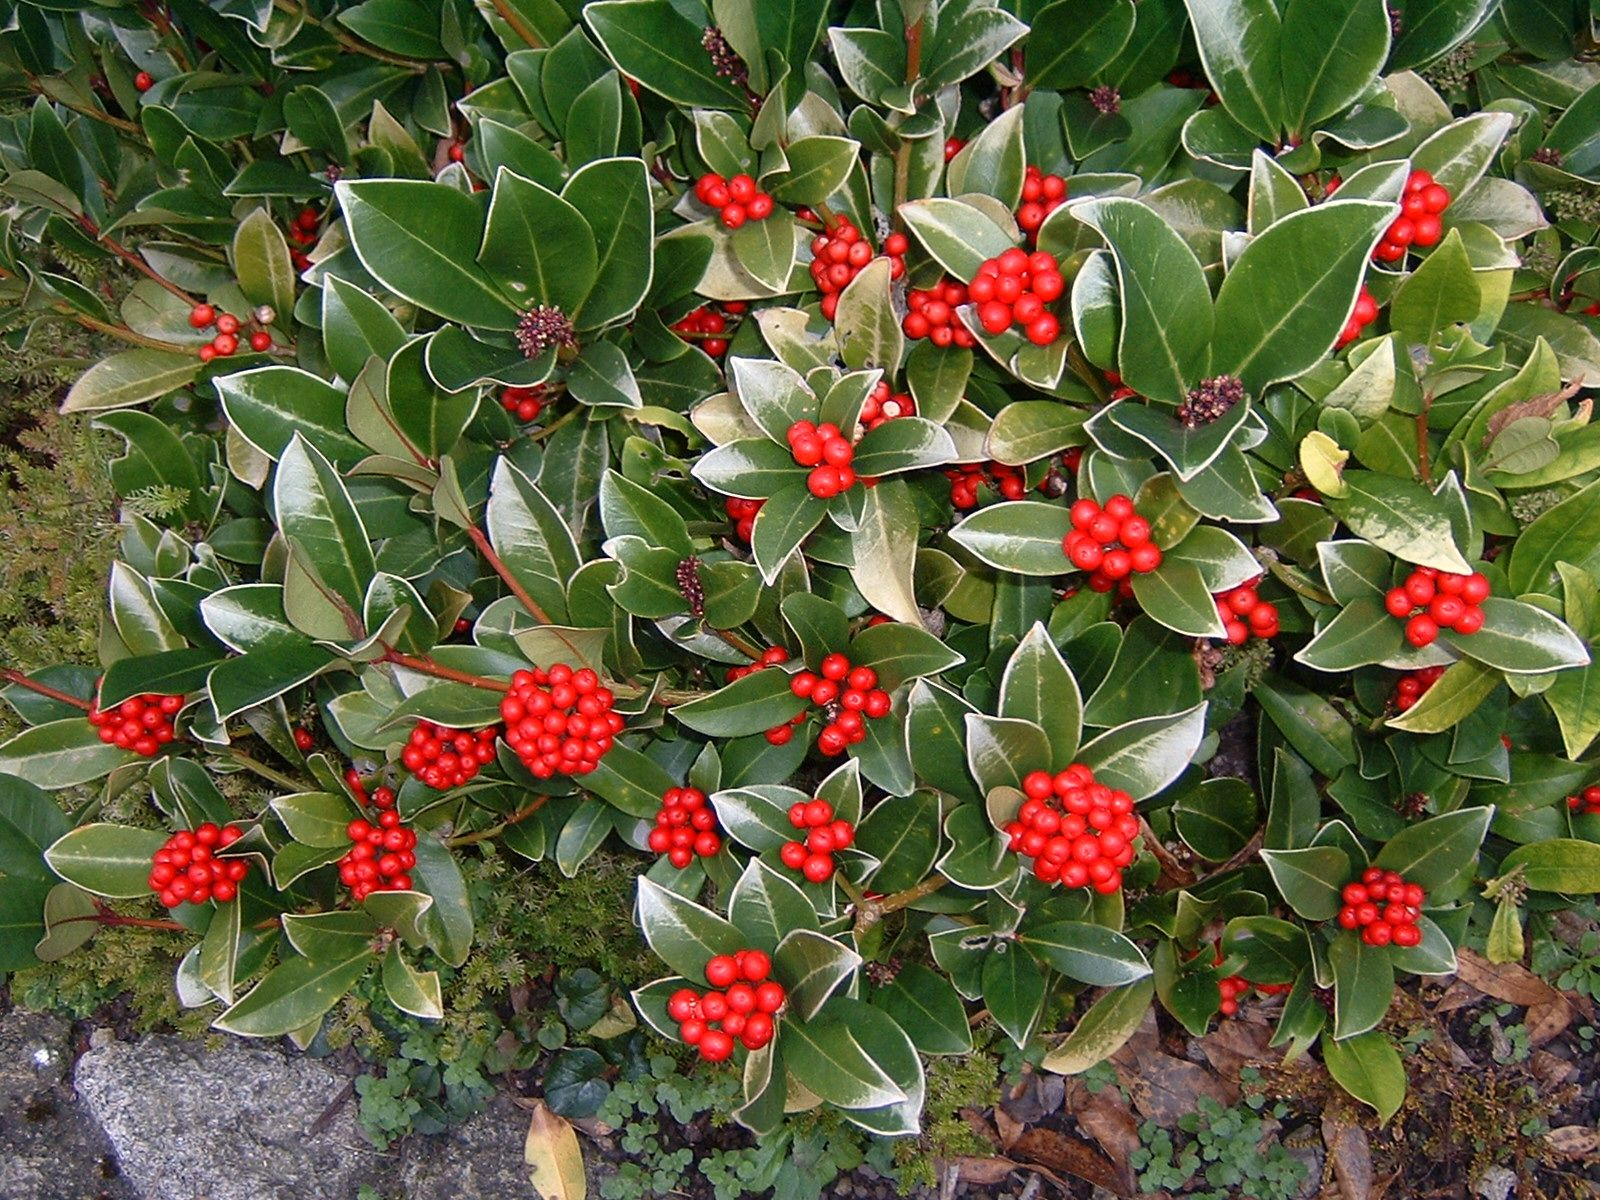 Evergreen Shrubs With Red Berries Check Out The Free Plant Identification Mobile At Gardenanswers